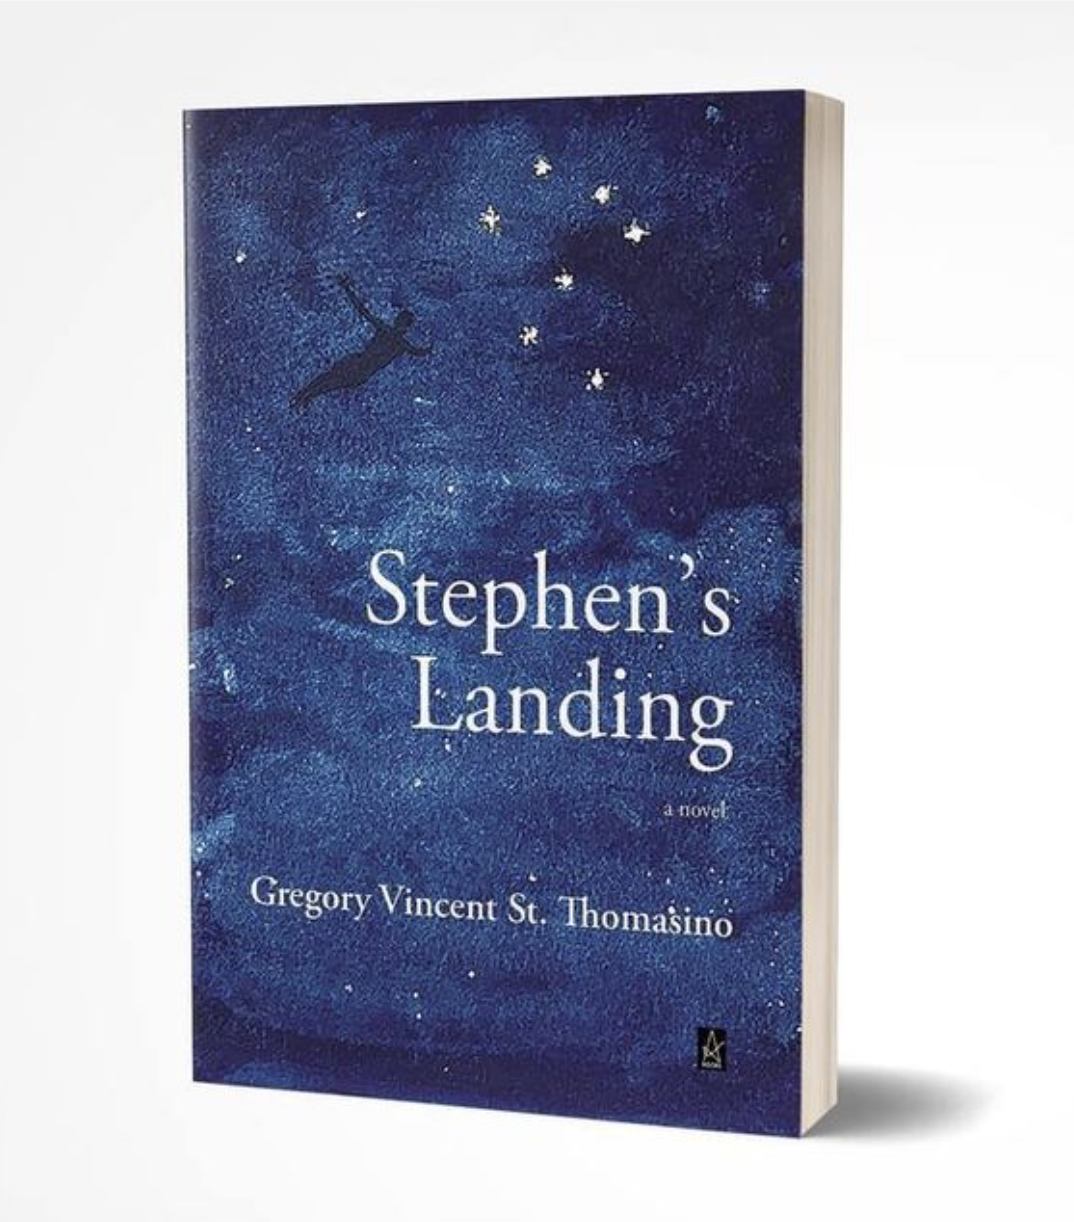 Stephen's Landing — a novel by Gregory Vincent St. Thomasino